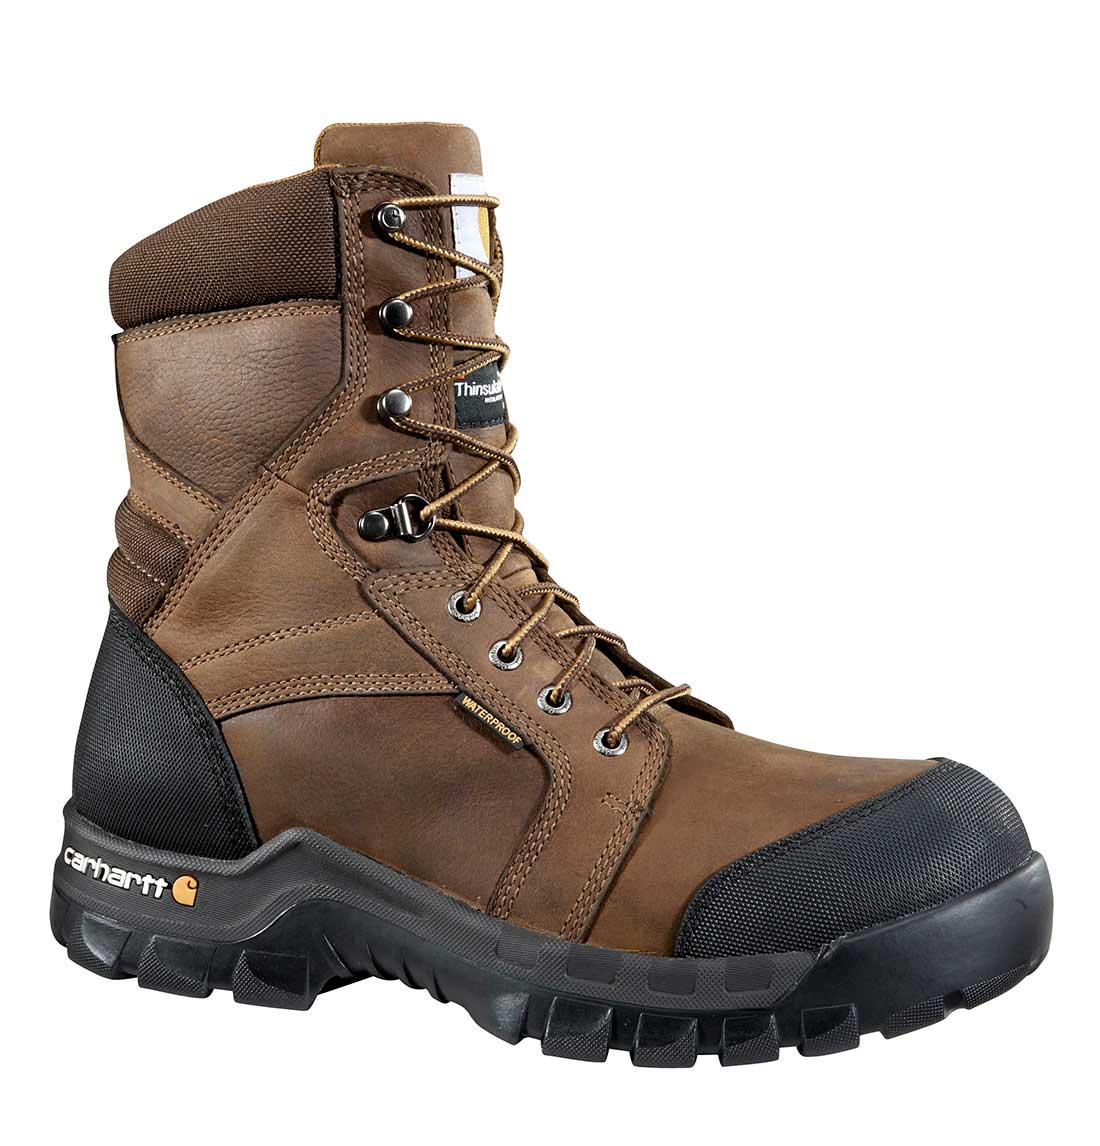 Rugged Flex Men's Brown Leather Waterproof Insulated Composite Safety Toe 8-inch lace-up Work Boot - Dark/Brown/Oil/Tan